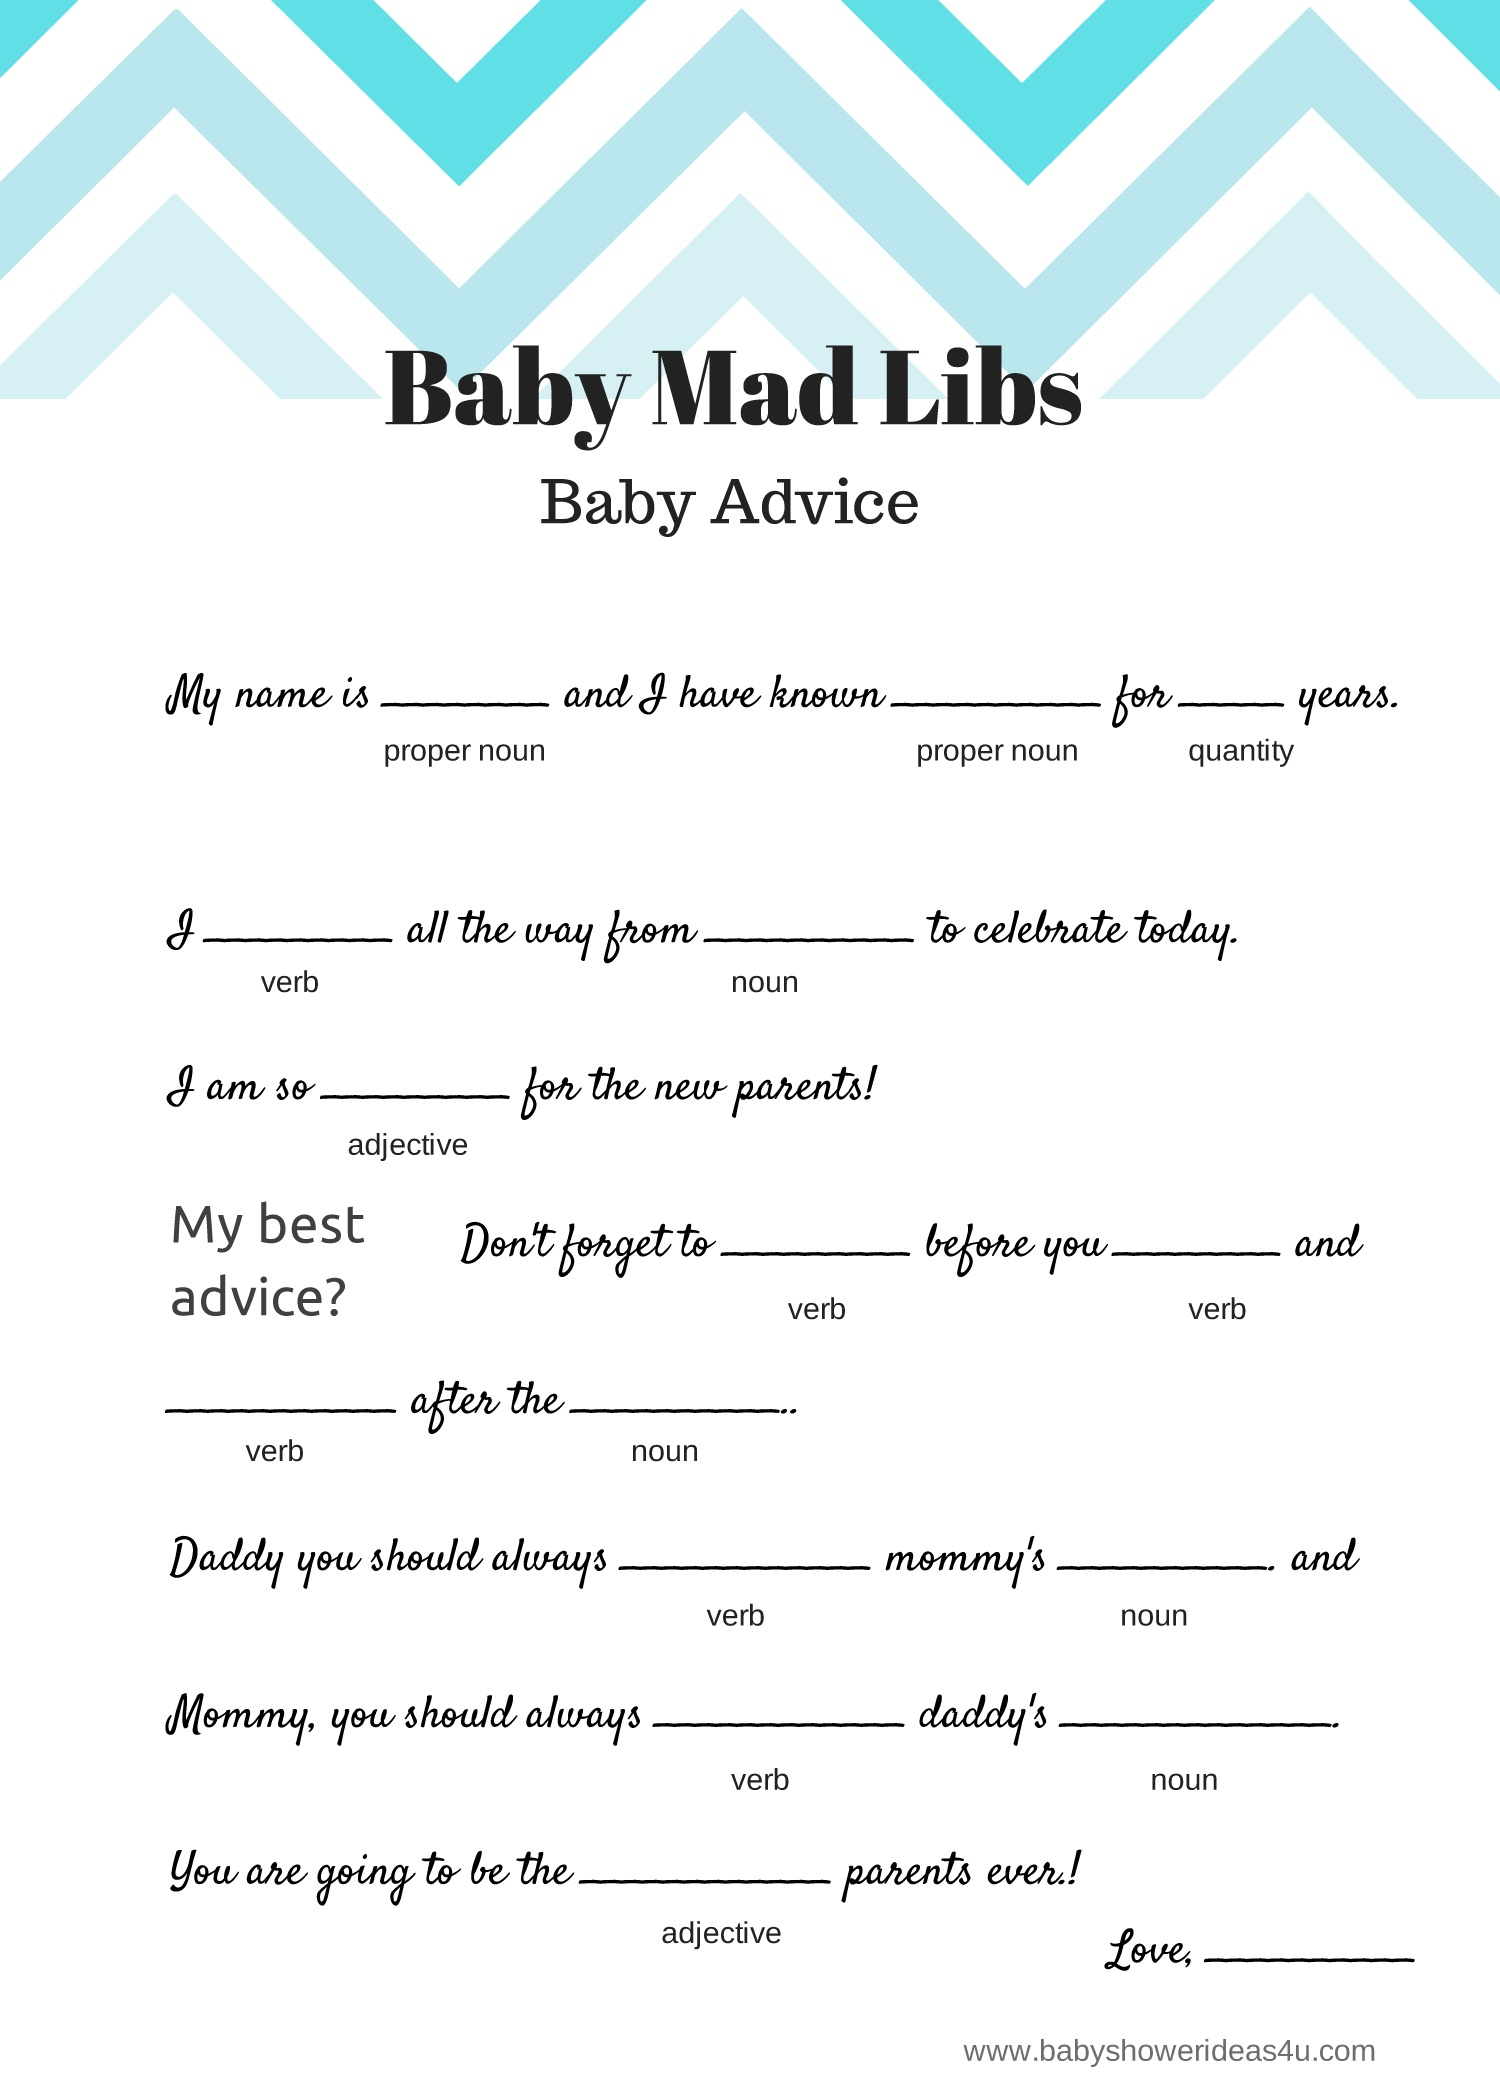 Baby Shower Mad Libs Printable Free